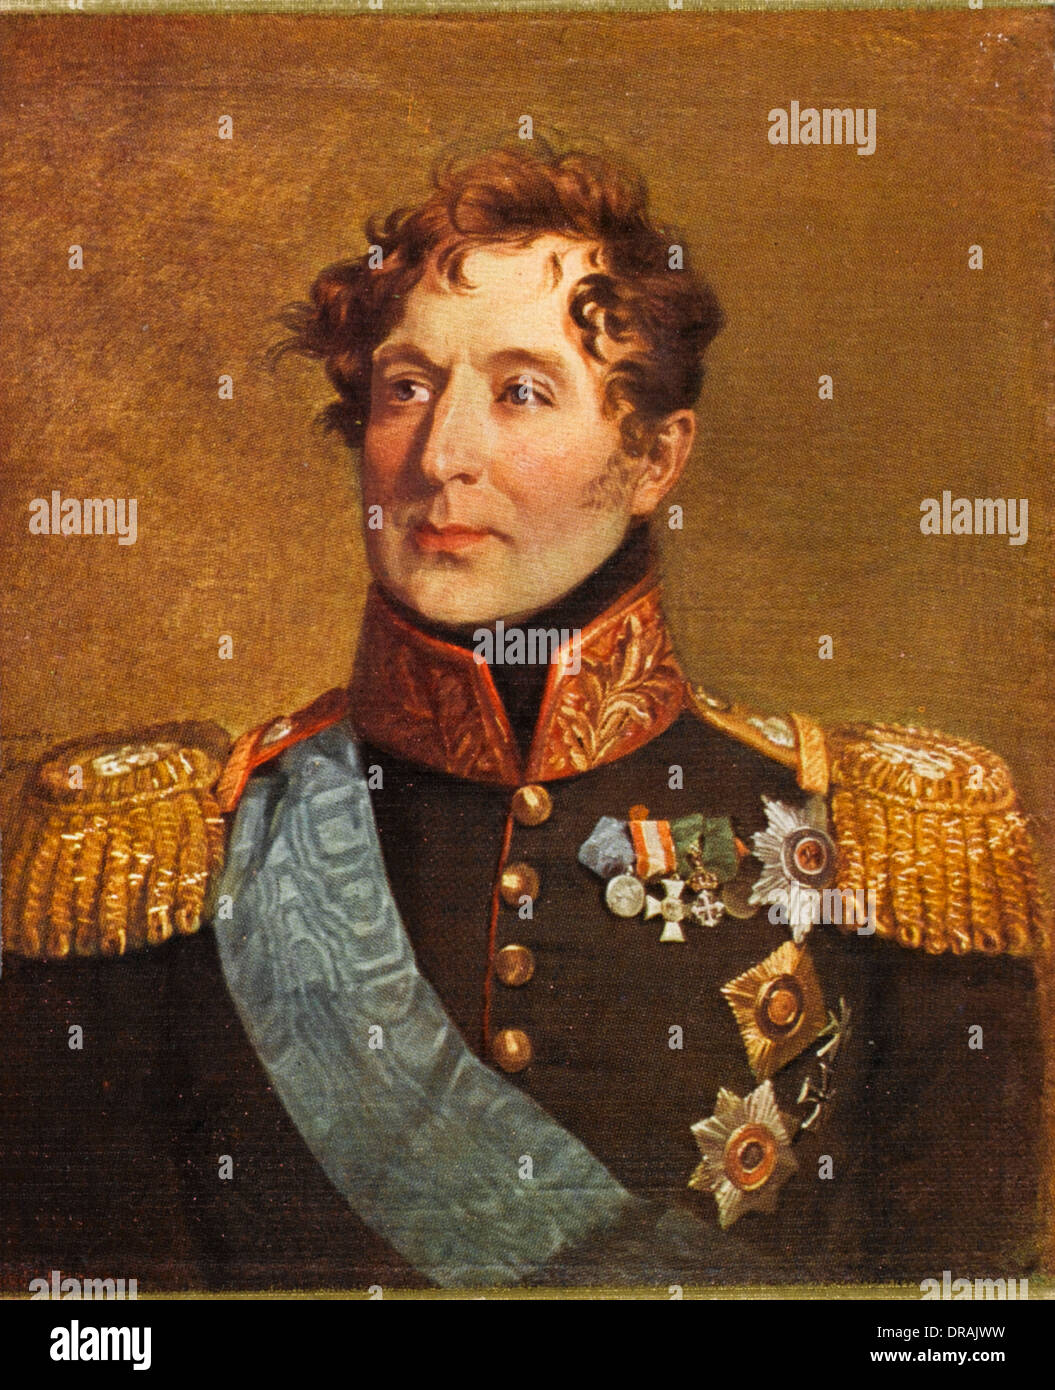 Count Mikhail Andreyevich Miloradovich - Stock Image